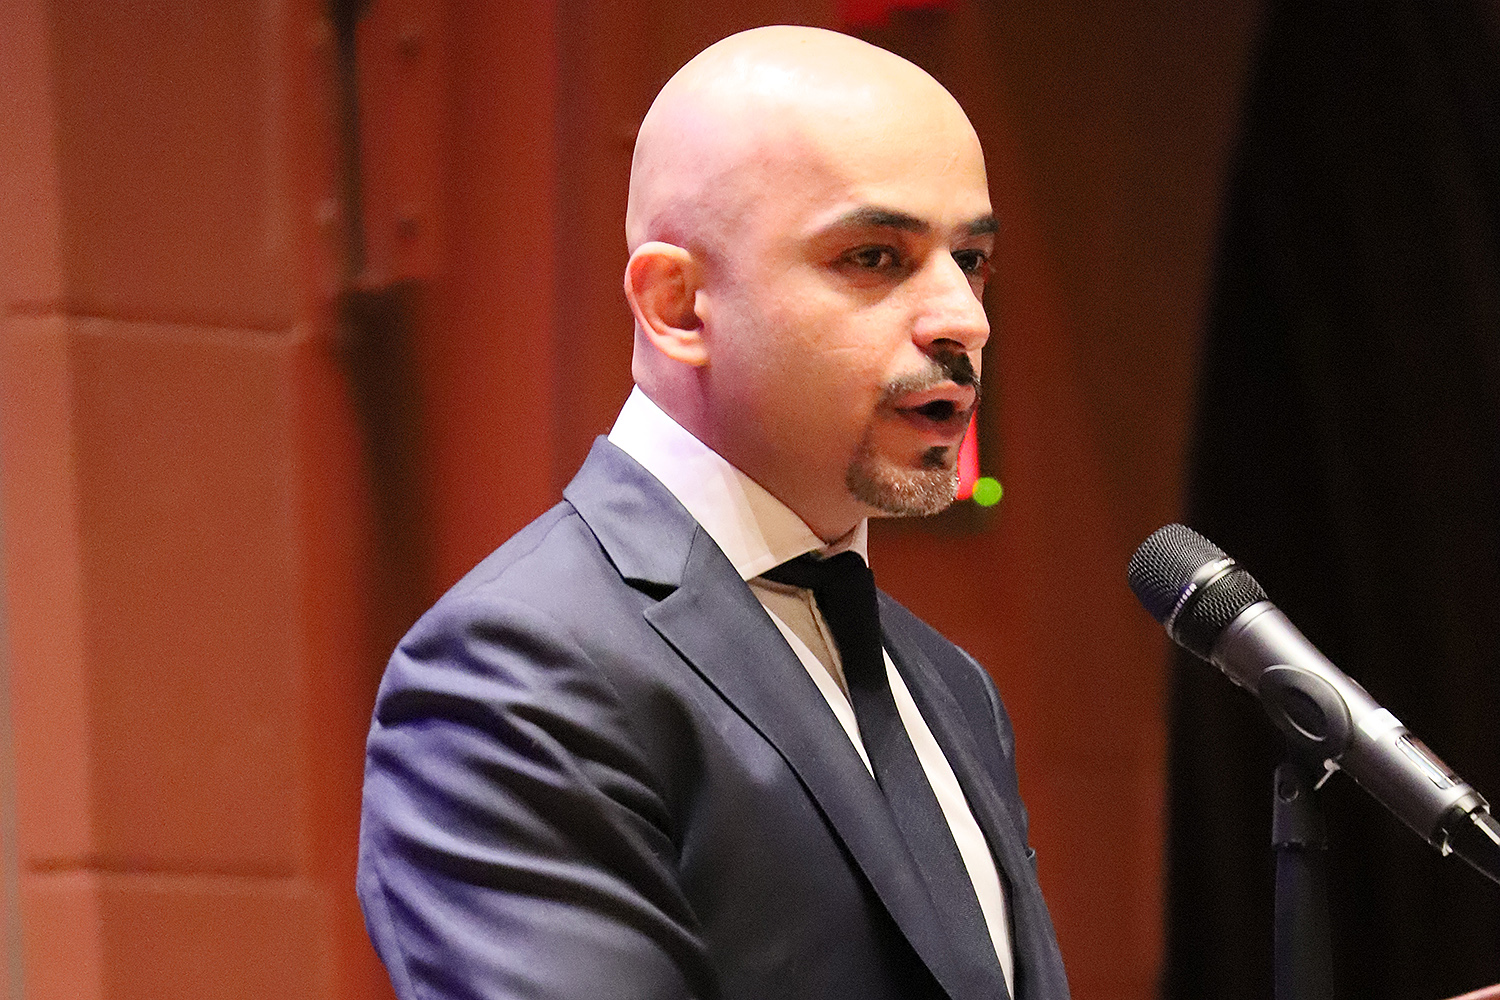 Mustafa Nayyem, a member of Ukrainian Parliament, Democratic Alliance, and former former investigative journalist, delivered the event's keynote address.